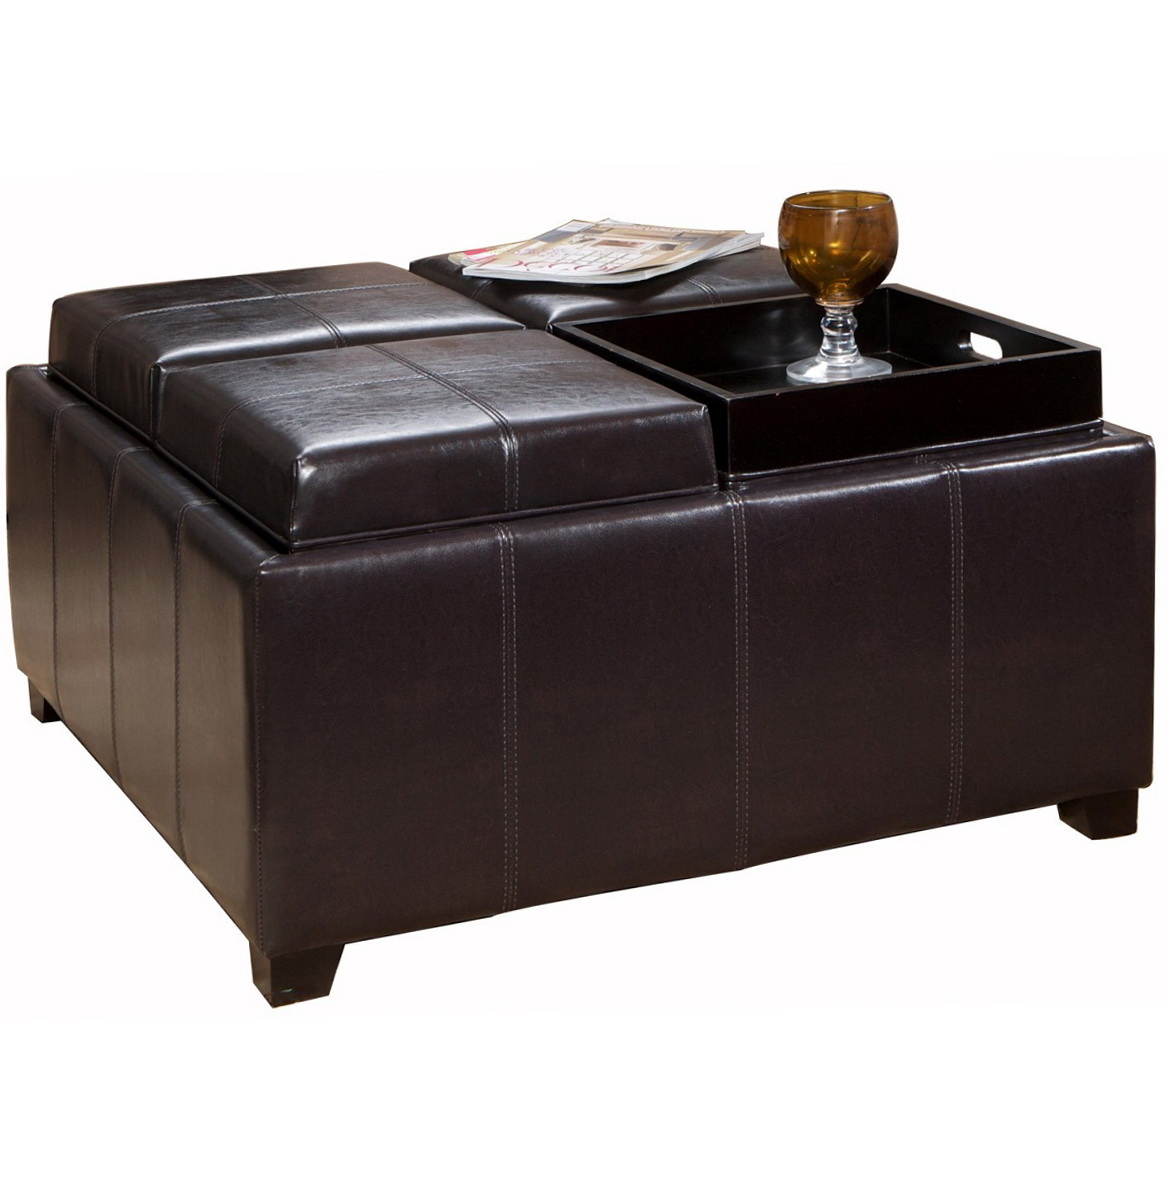 Leather ottoman coffee table with tray home design ideas Ottoman coffee table trays